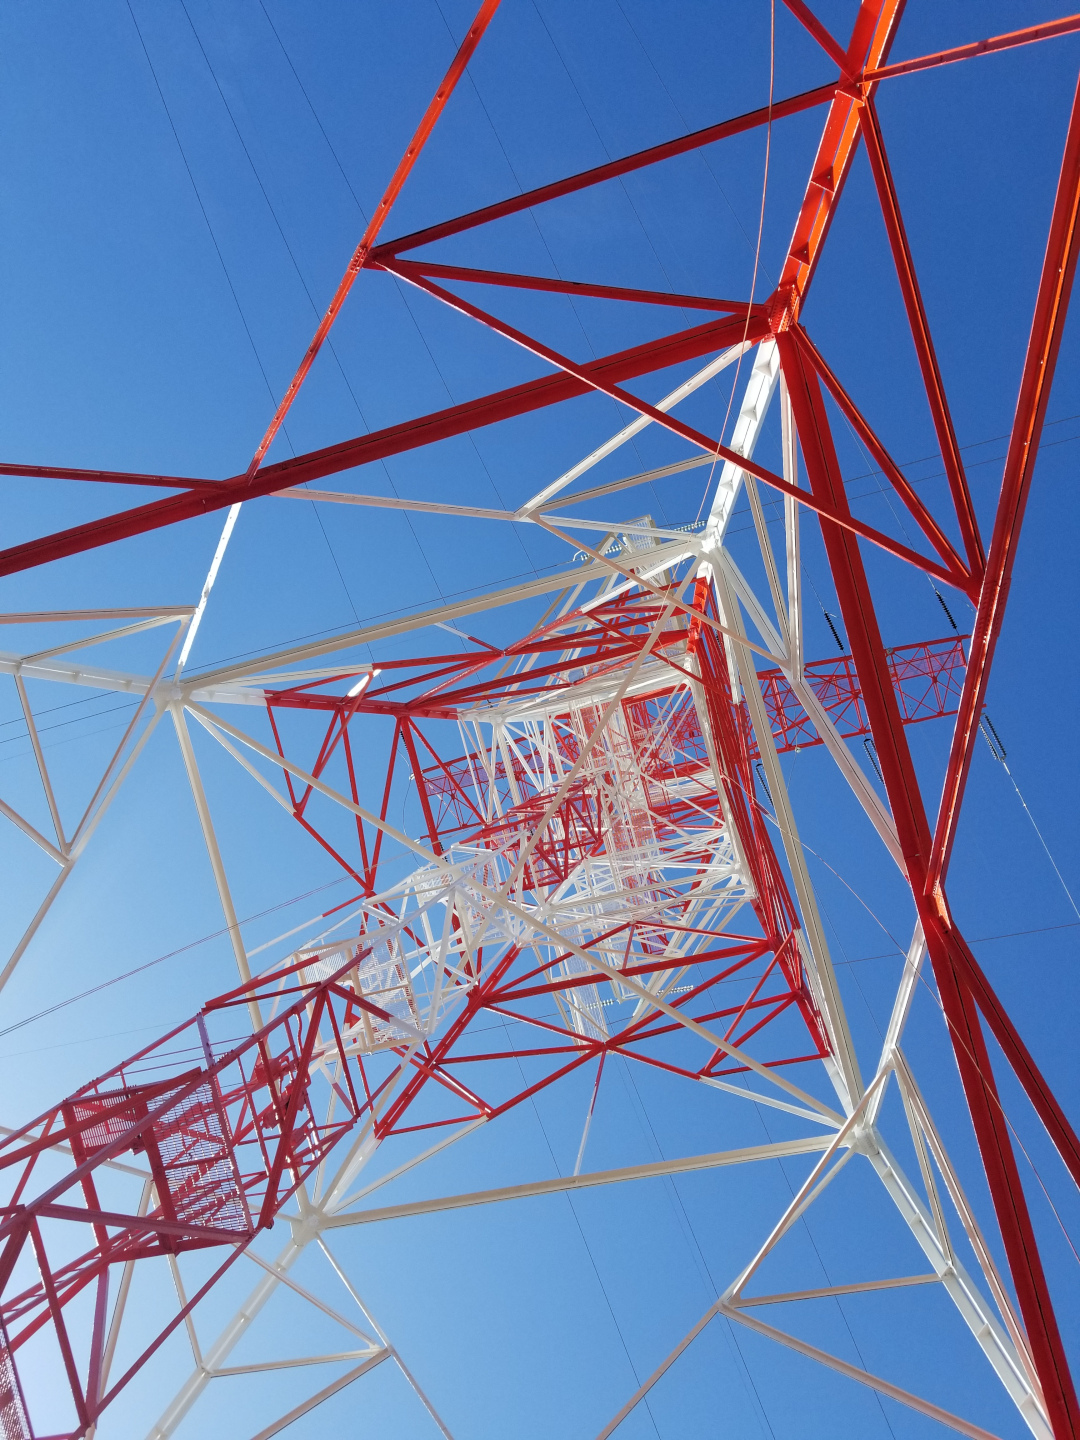 Tower Painting And Pole Painting Services Seacor Painting